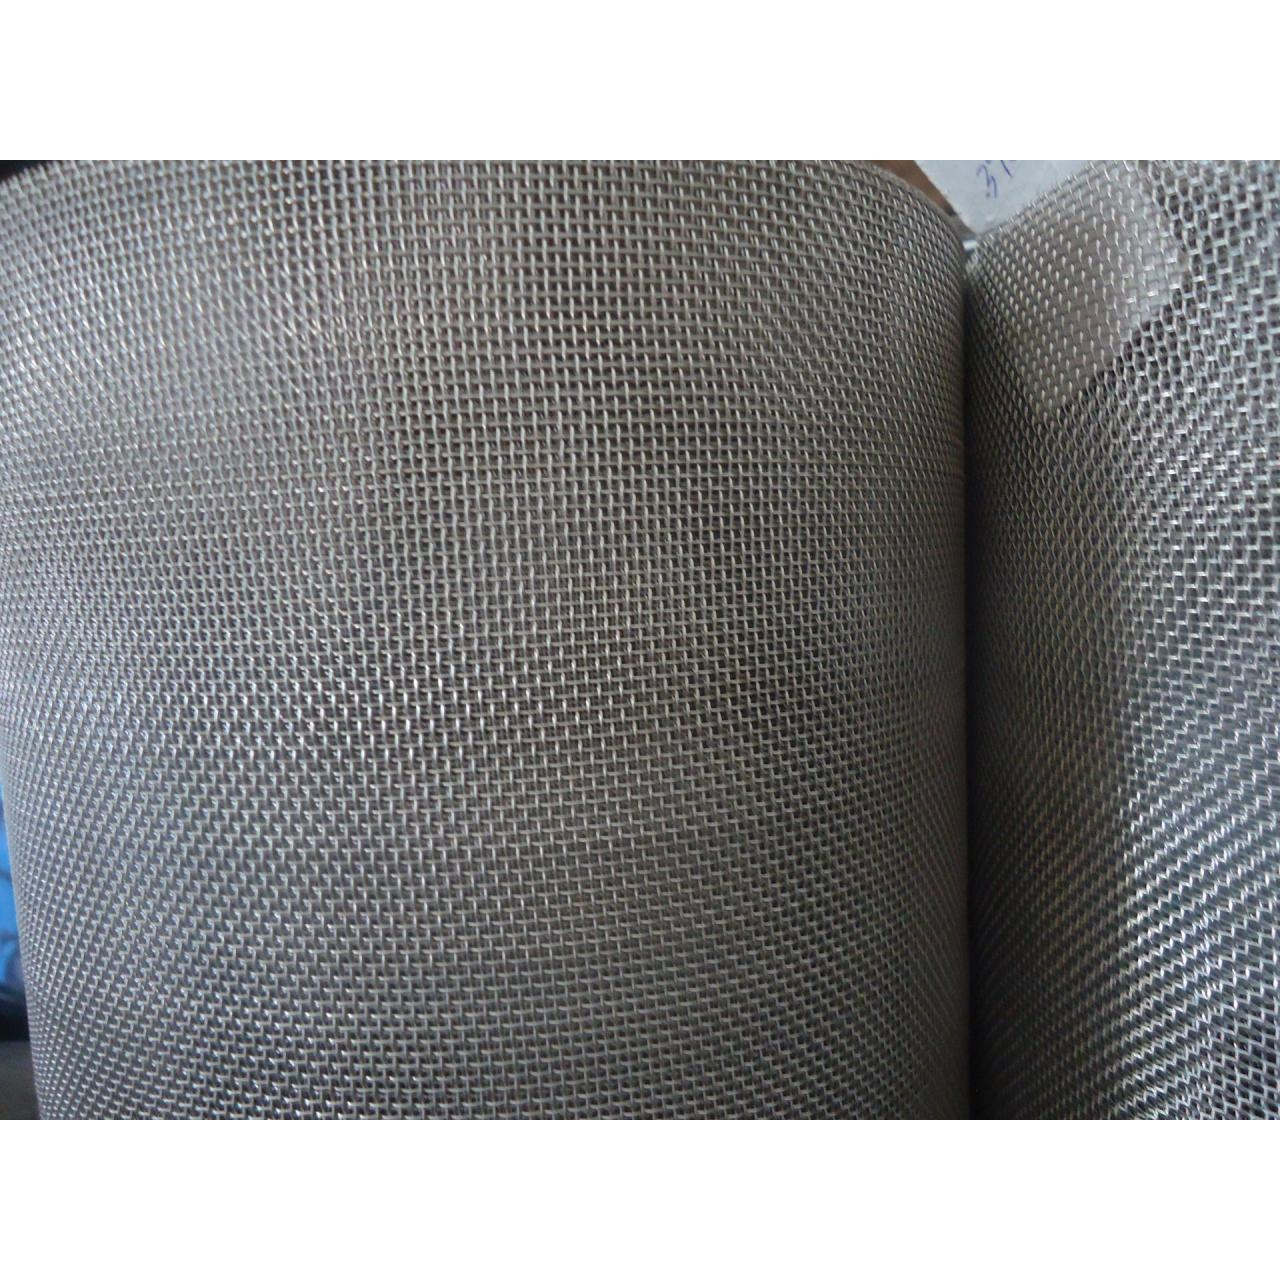 Security Mesh stainless steel wire mesh Manufactures